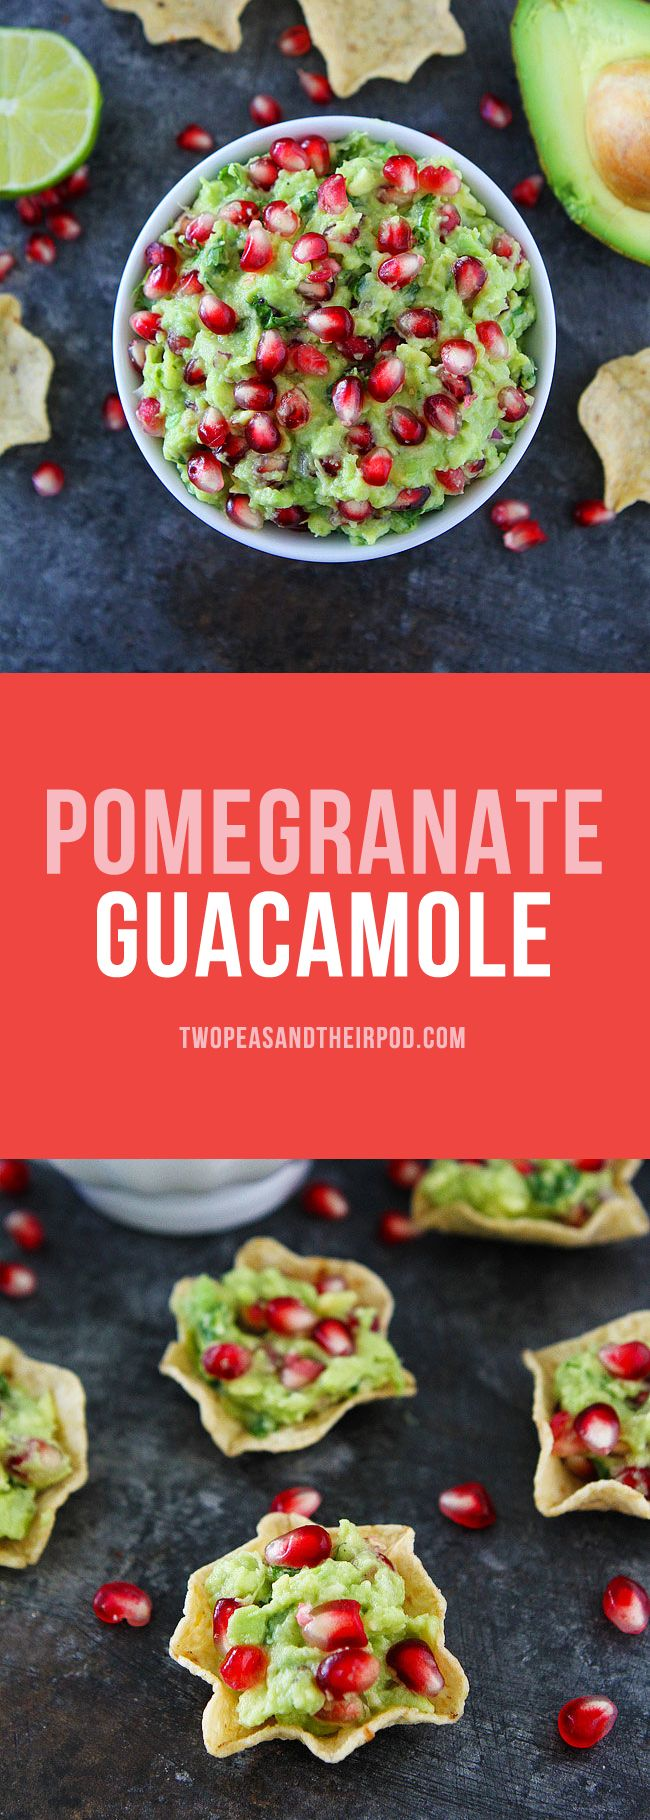 Pomegranate Guacamole is an easy holiday appetizer! Everyone will love this festive Christmas guacamole and it's SO easy to make! #christmas #holidays #guacamole #GlutenFree